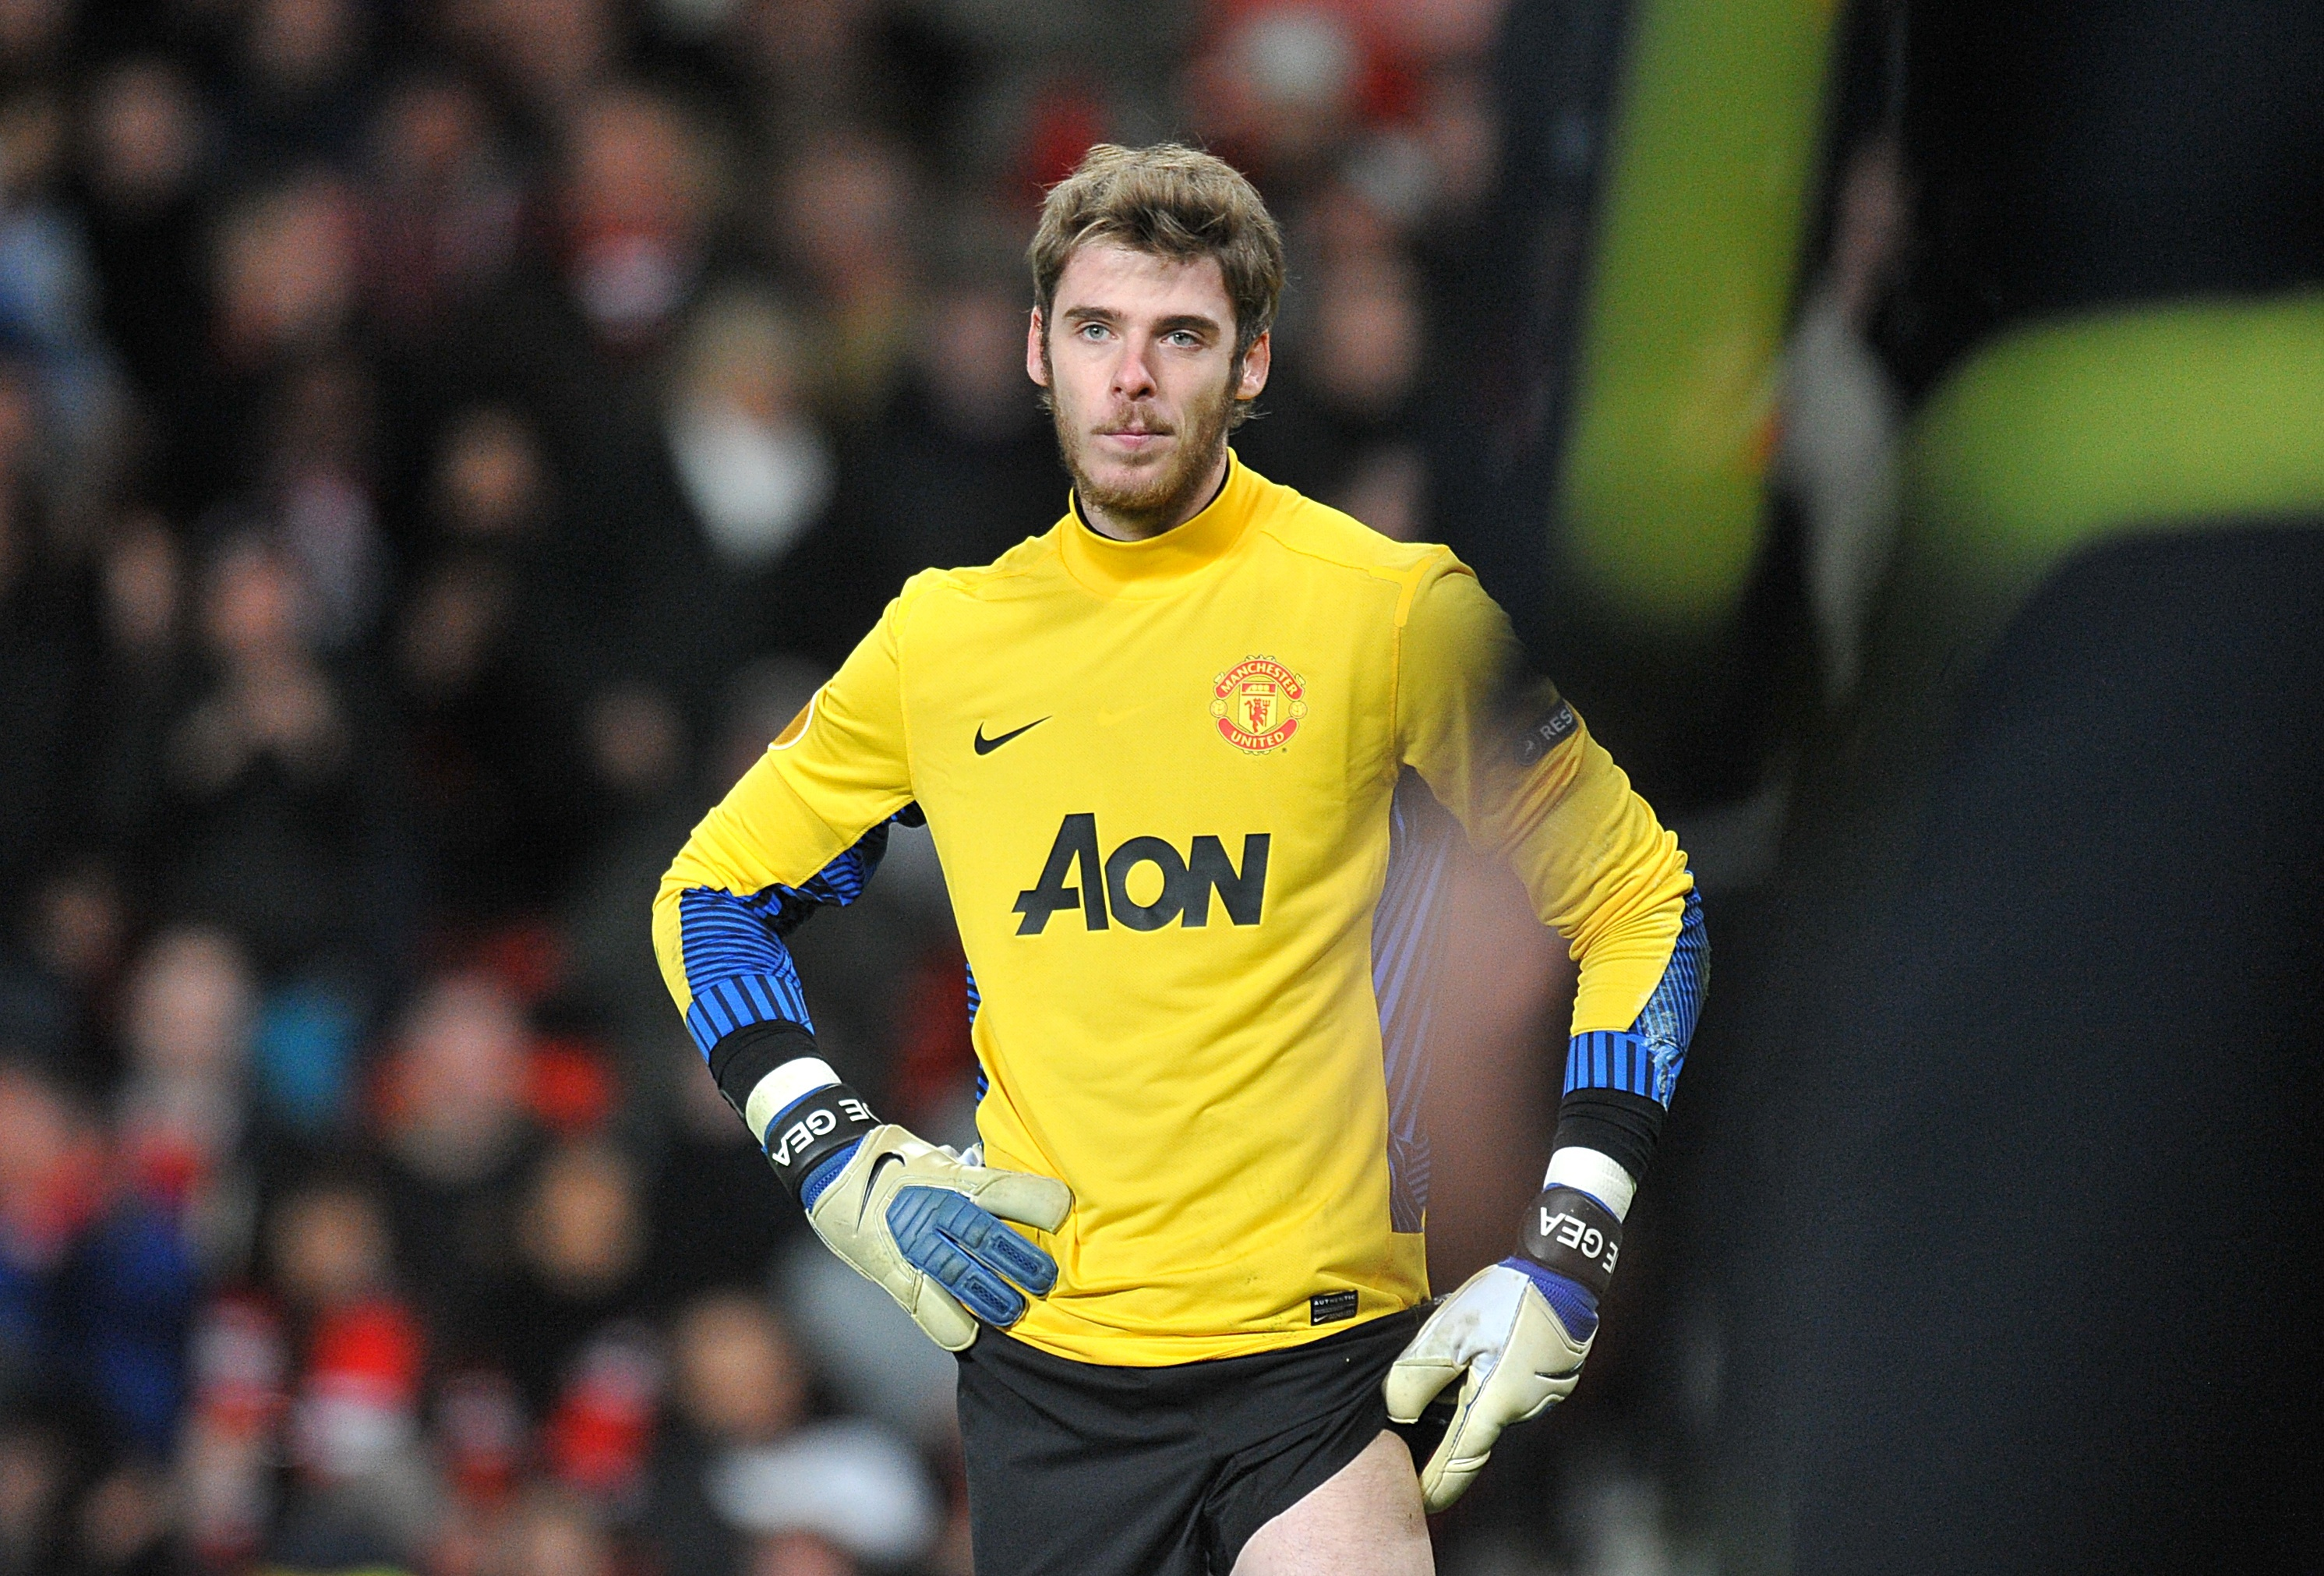 De Gea struggled early in his United career but has become the club's most important player. Image: PA Images